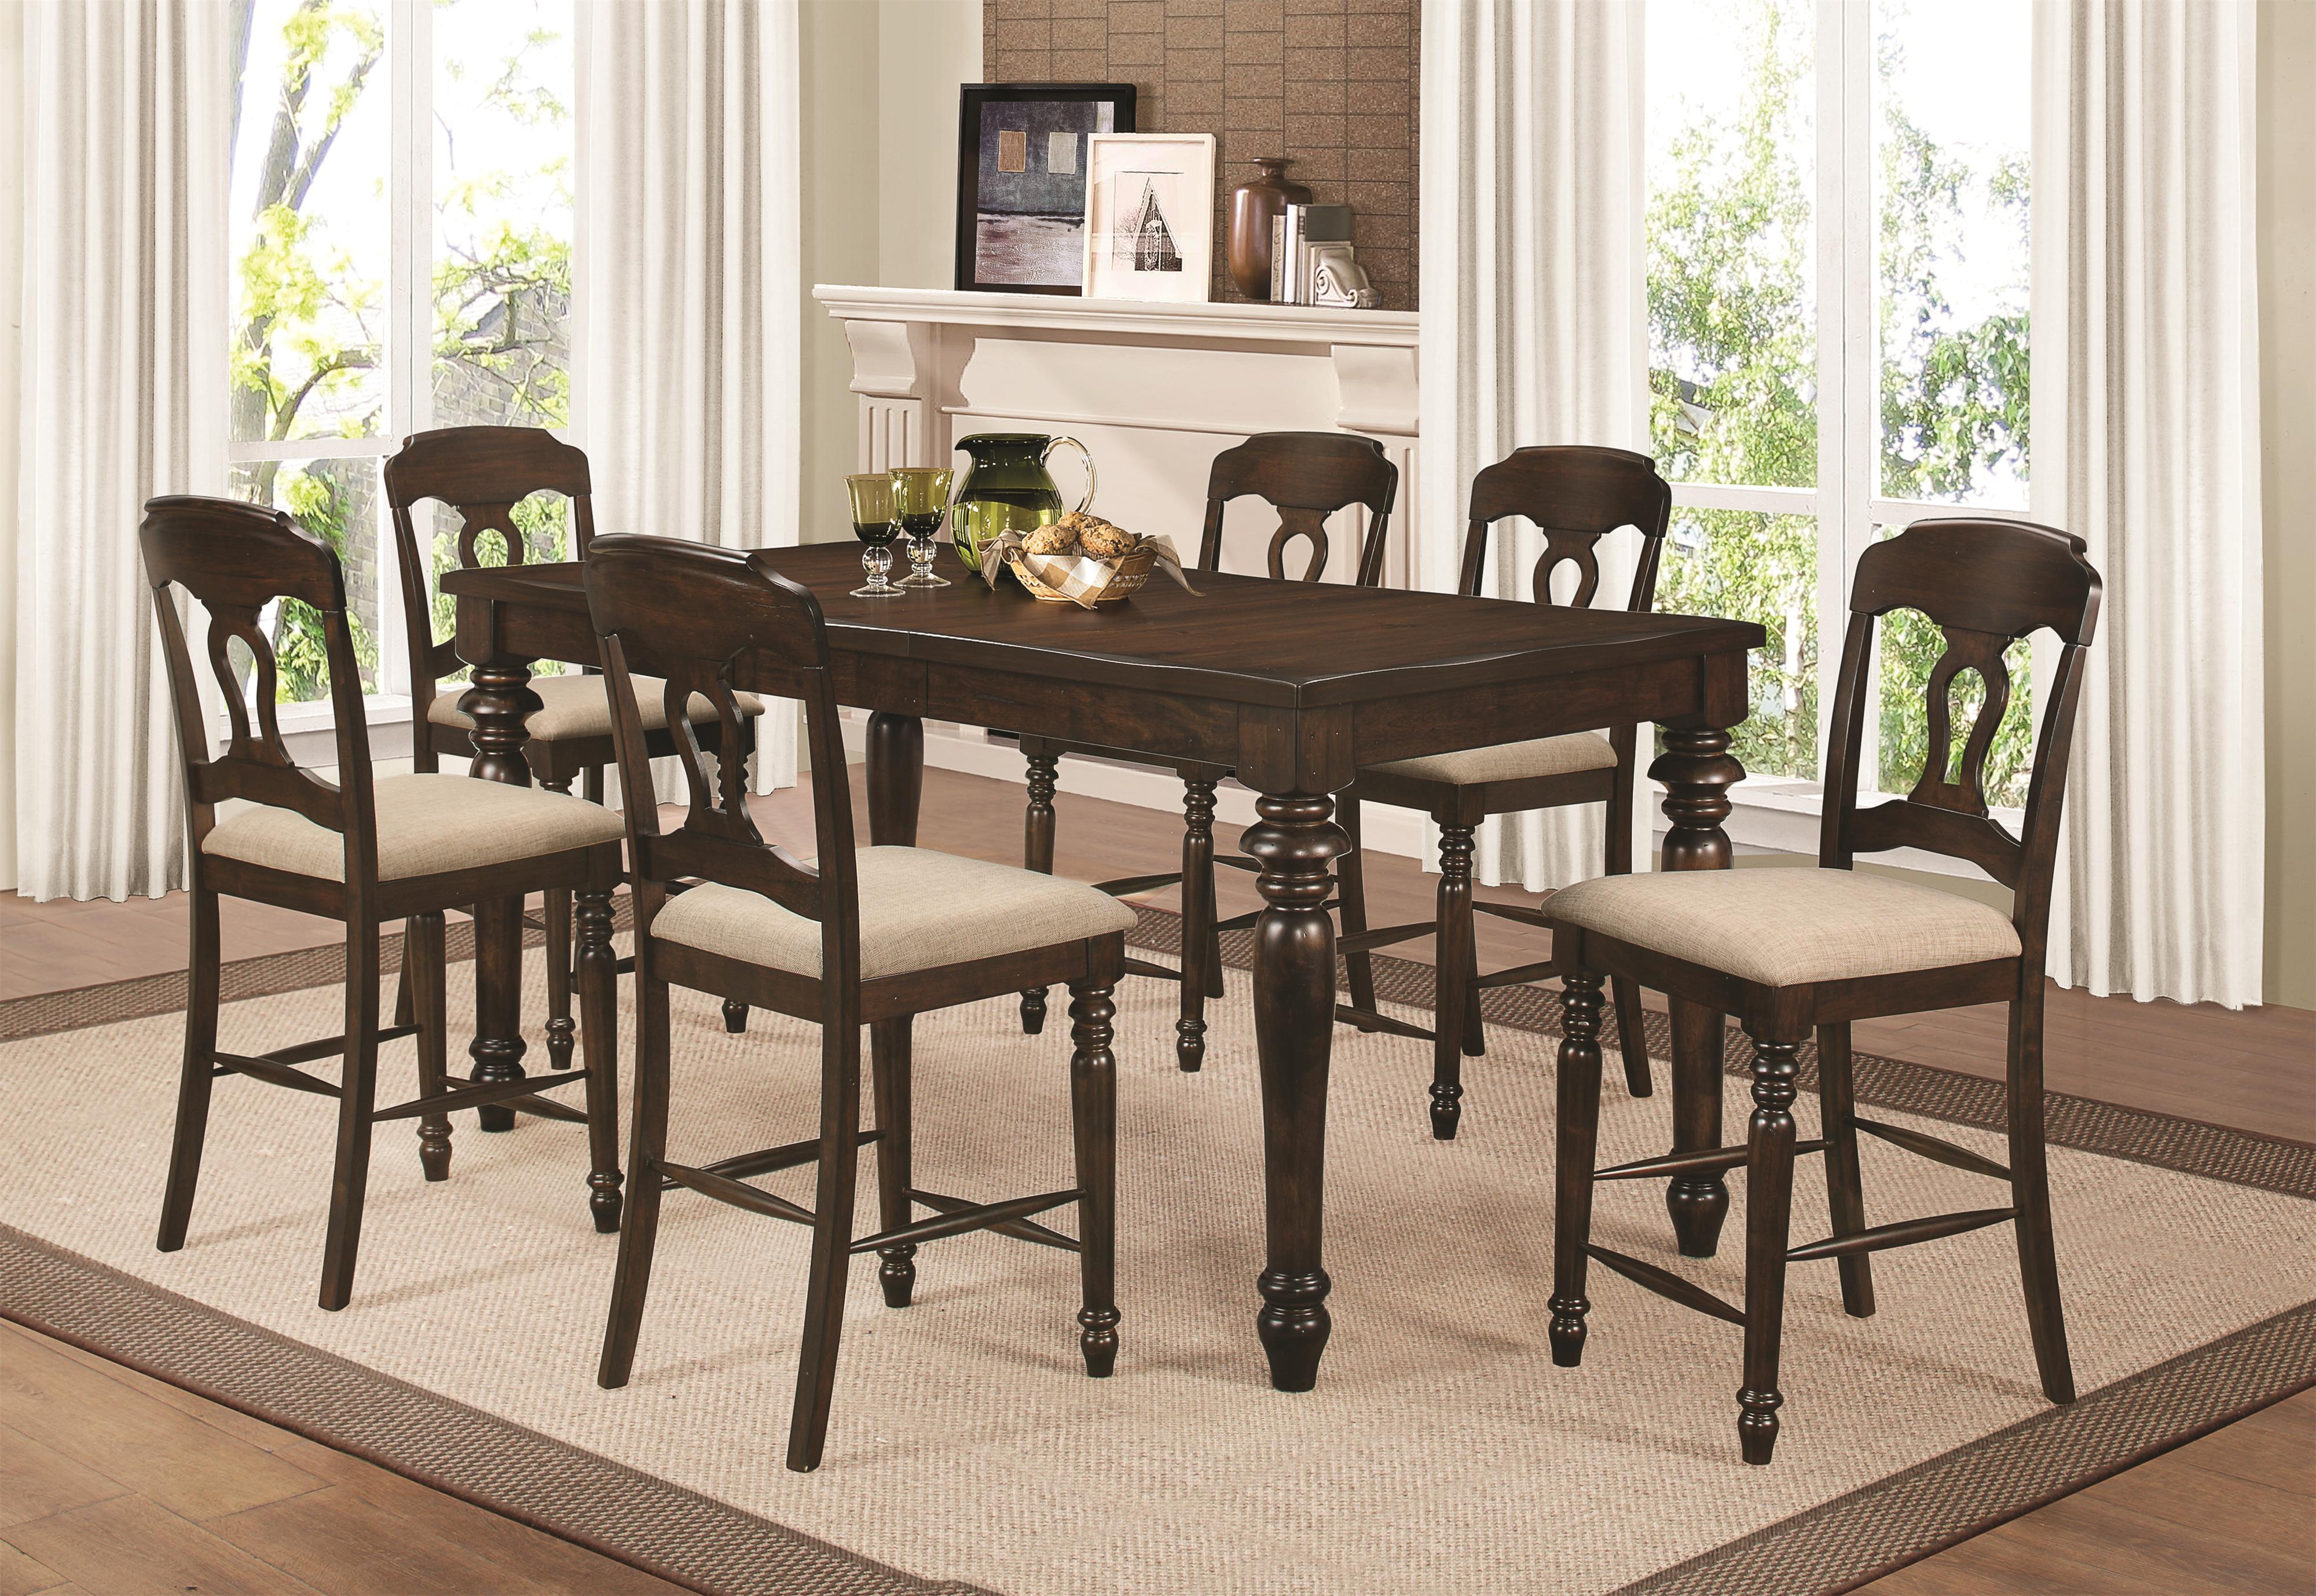 Coaster Hamilton 7 Piece Counter Height Dining Set - Item Number: 106358+6x106359